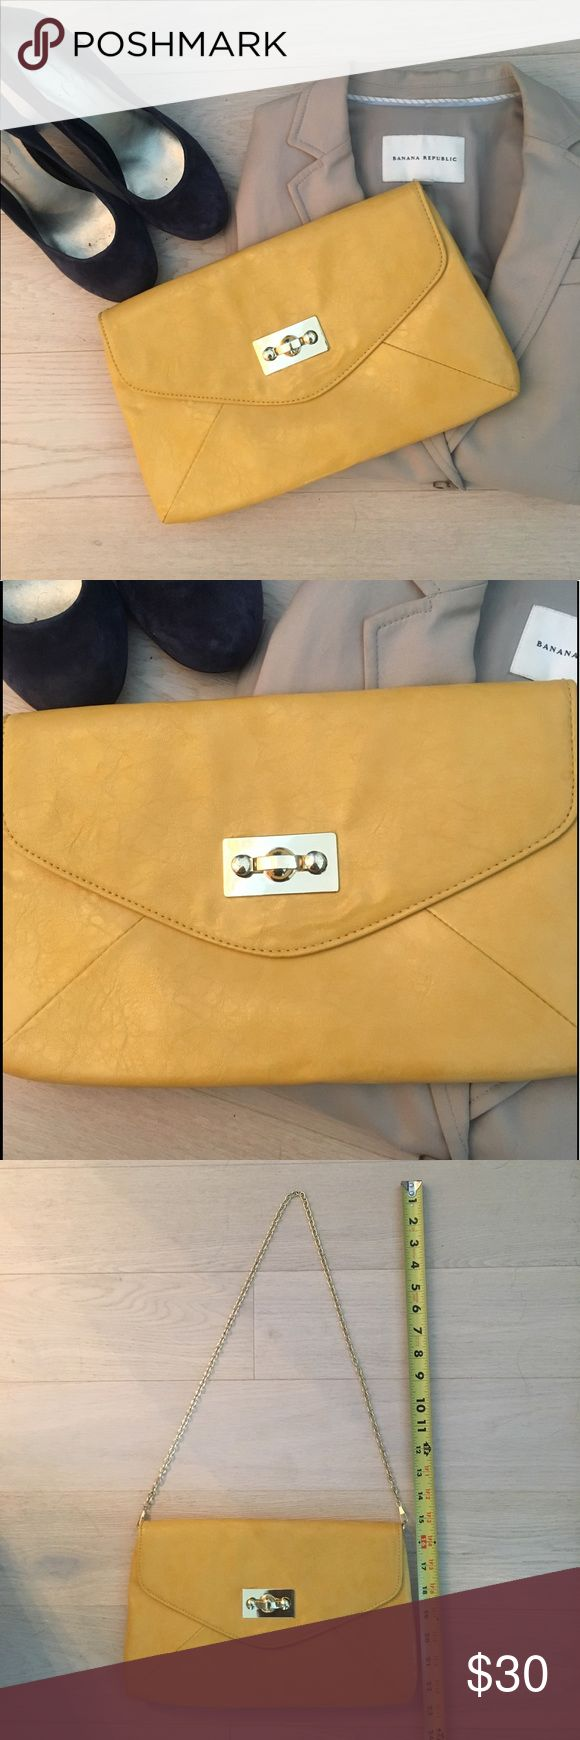 Yellow Clutch Bag with Chain Strap - Aldo • Aldo yellow clutch bag with chain strap • Gold hardware details • Chain can be tucked into bag to use it as a clutch • One interior zipper pocket • Good condition Aldo Bags